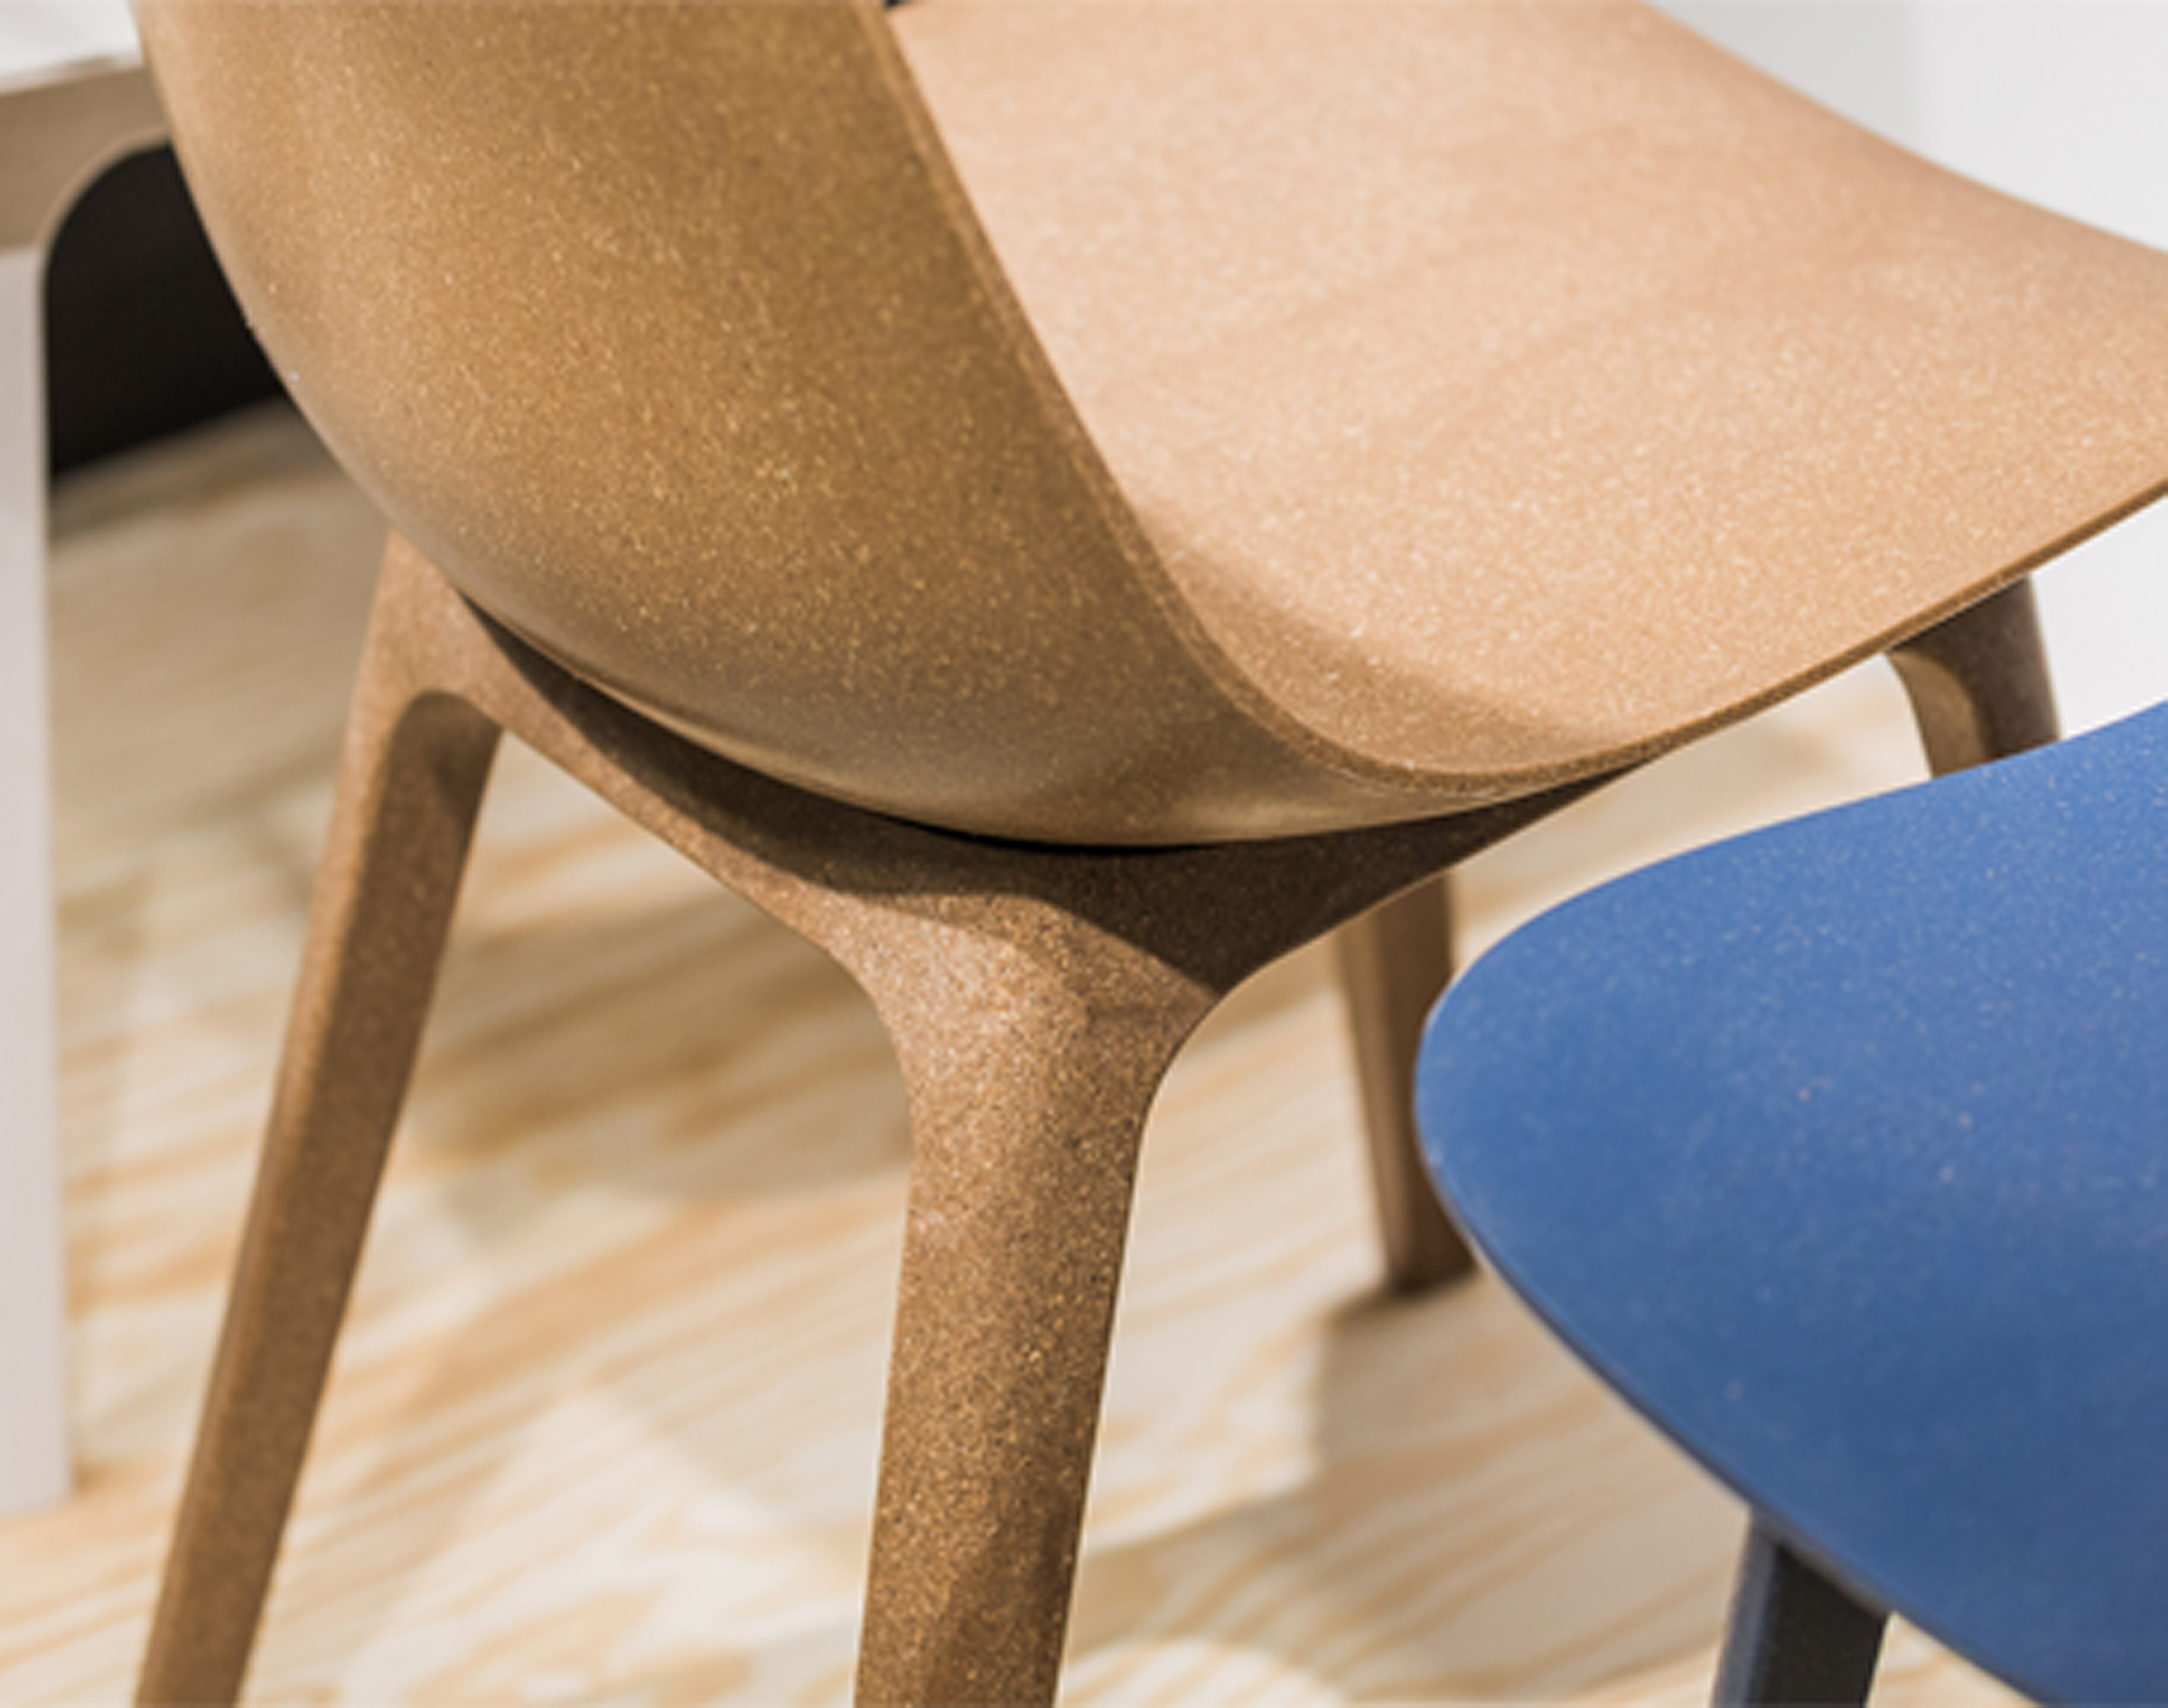 An image of the bowl-shaped seat and rounded back of a brown IKEA ODGER chair made of renewable wood and recycled plastic.